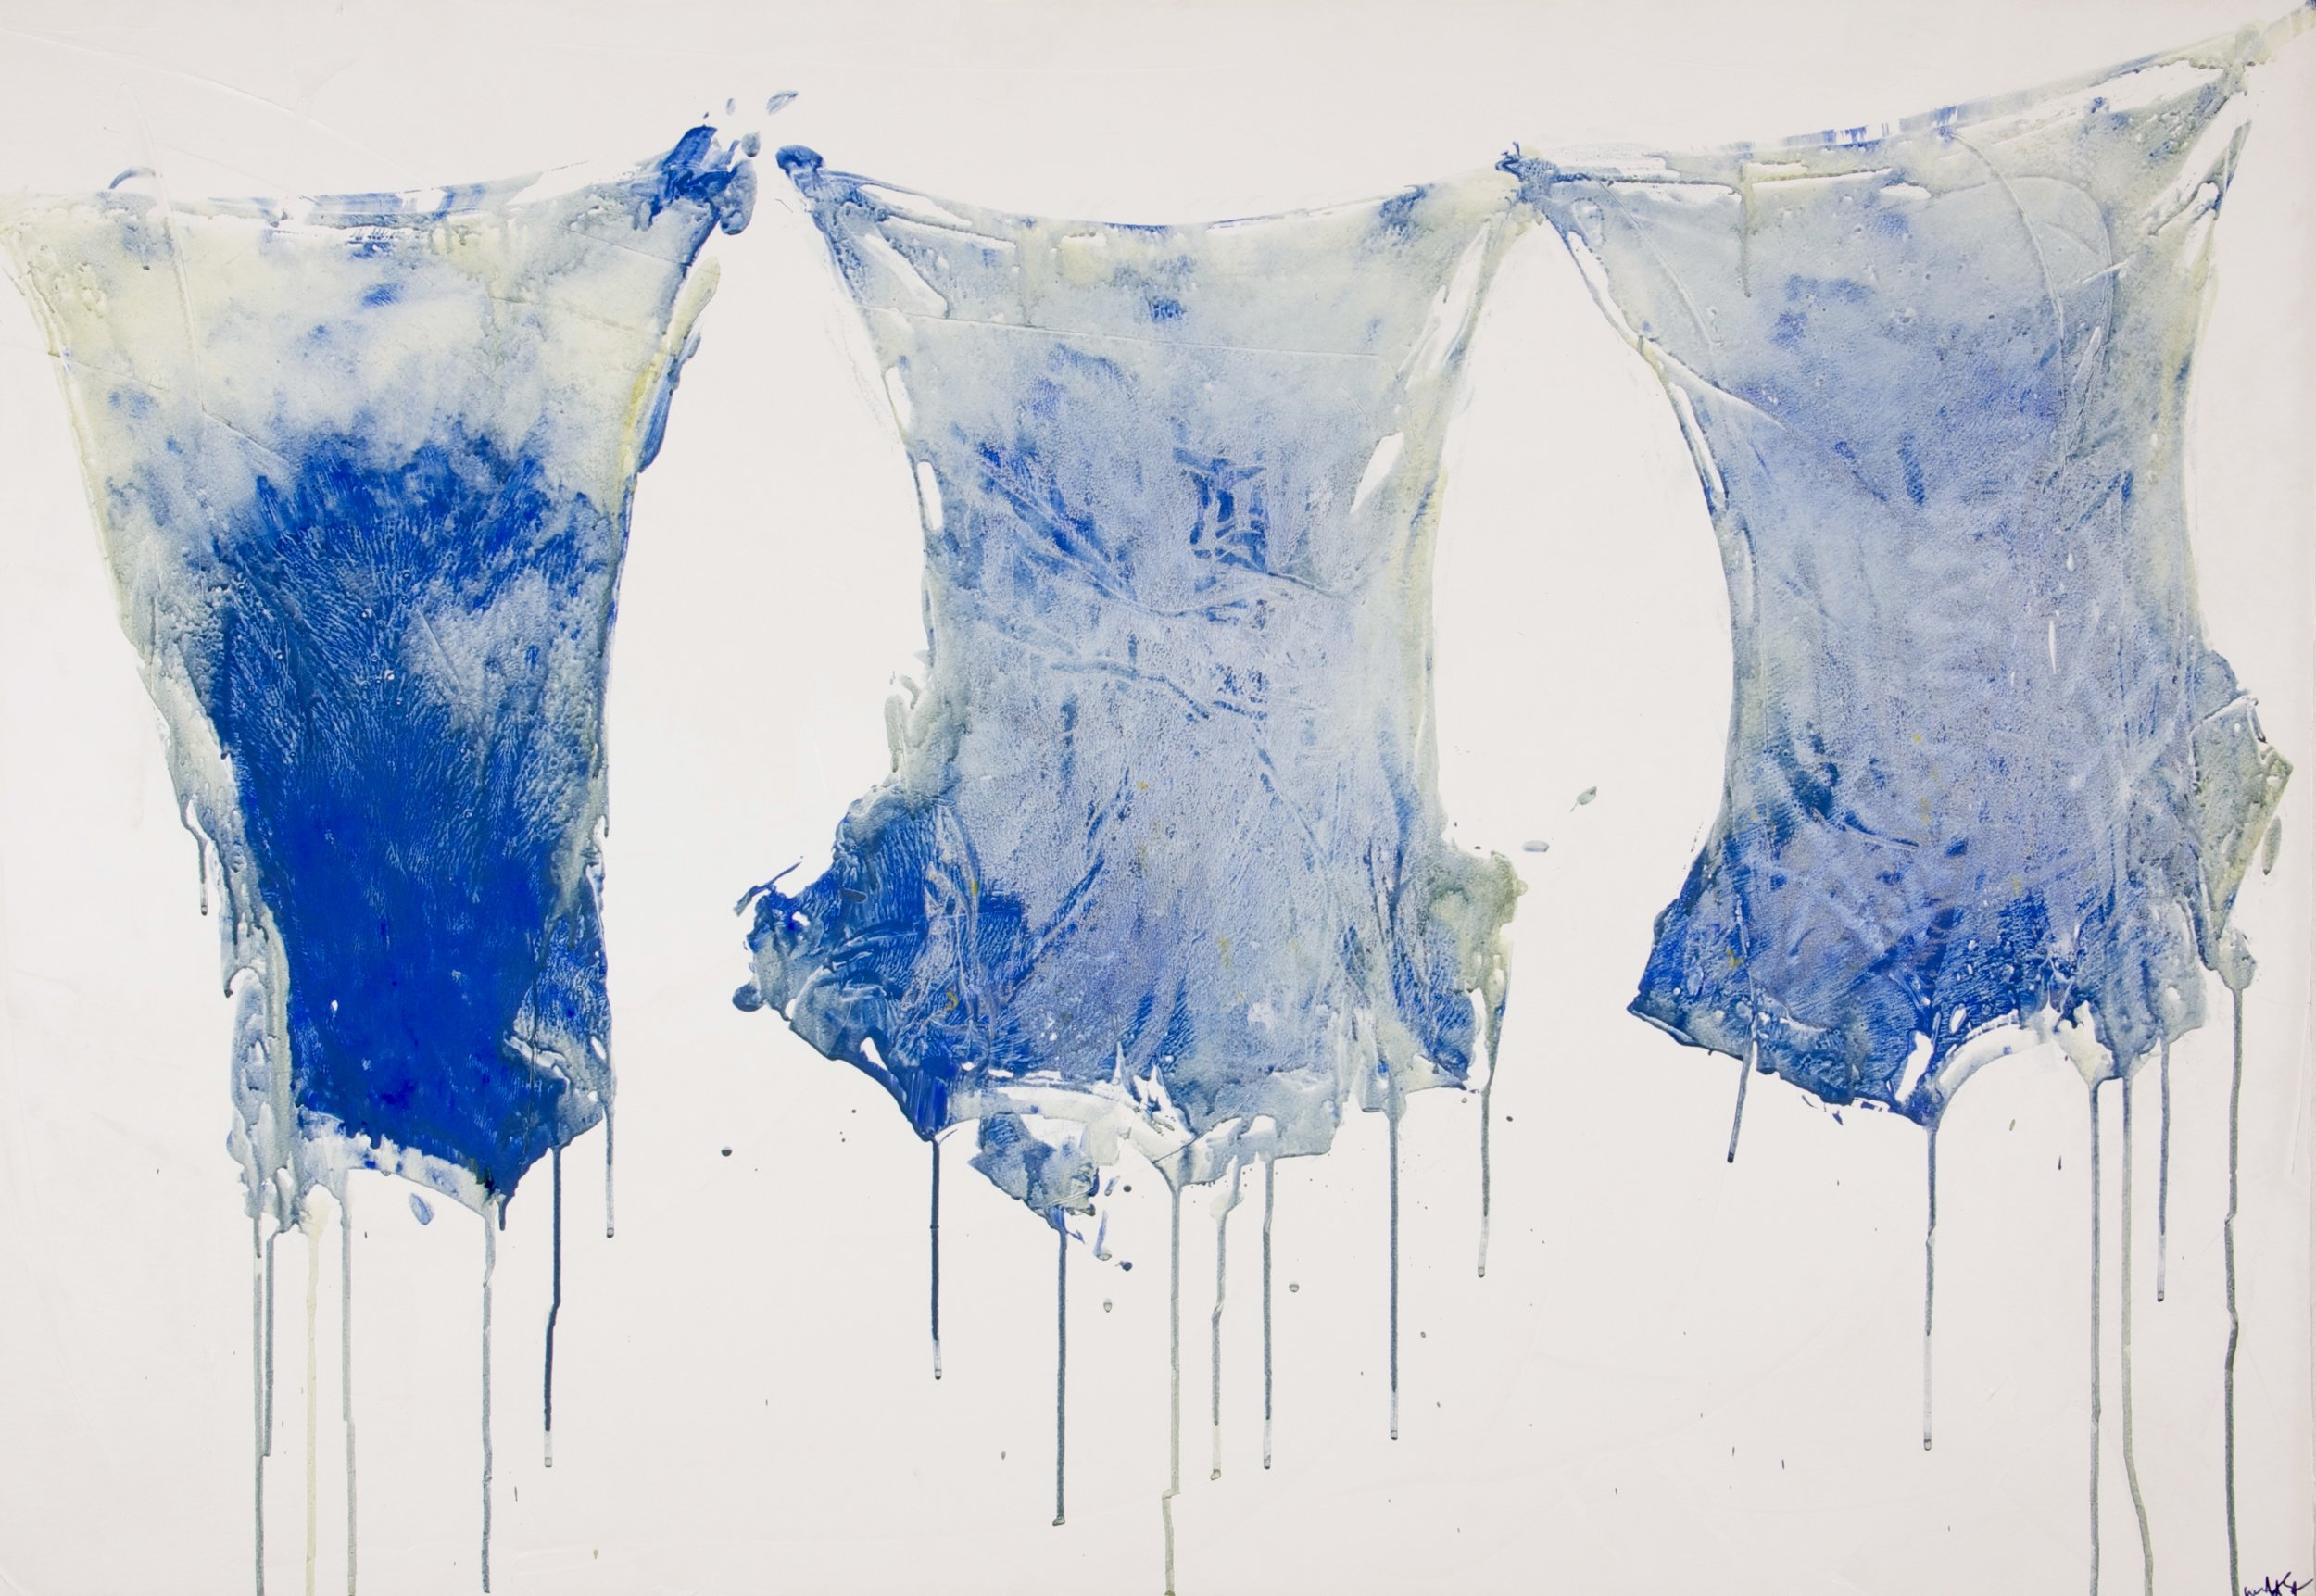 laundry I, is part of the  Laundry//Economy  series, created in 2011.